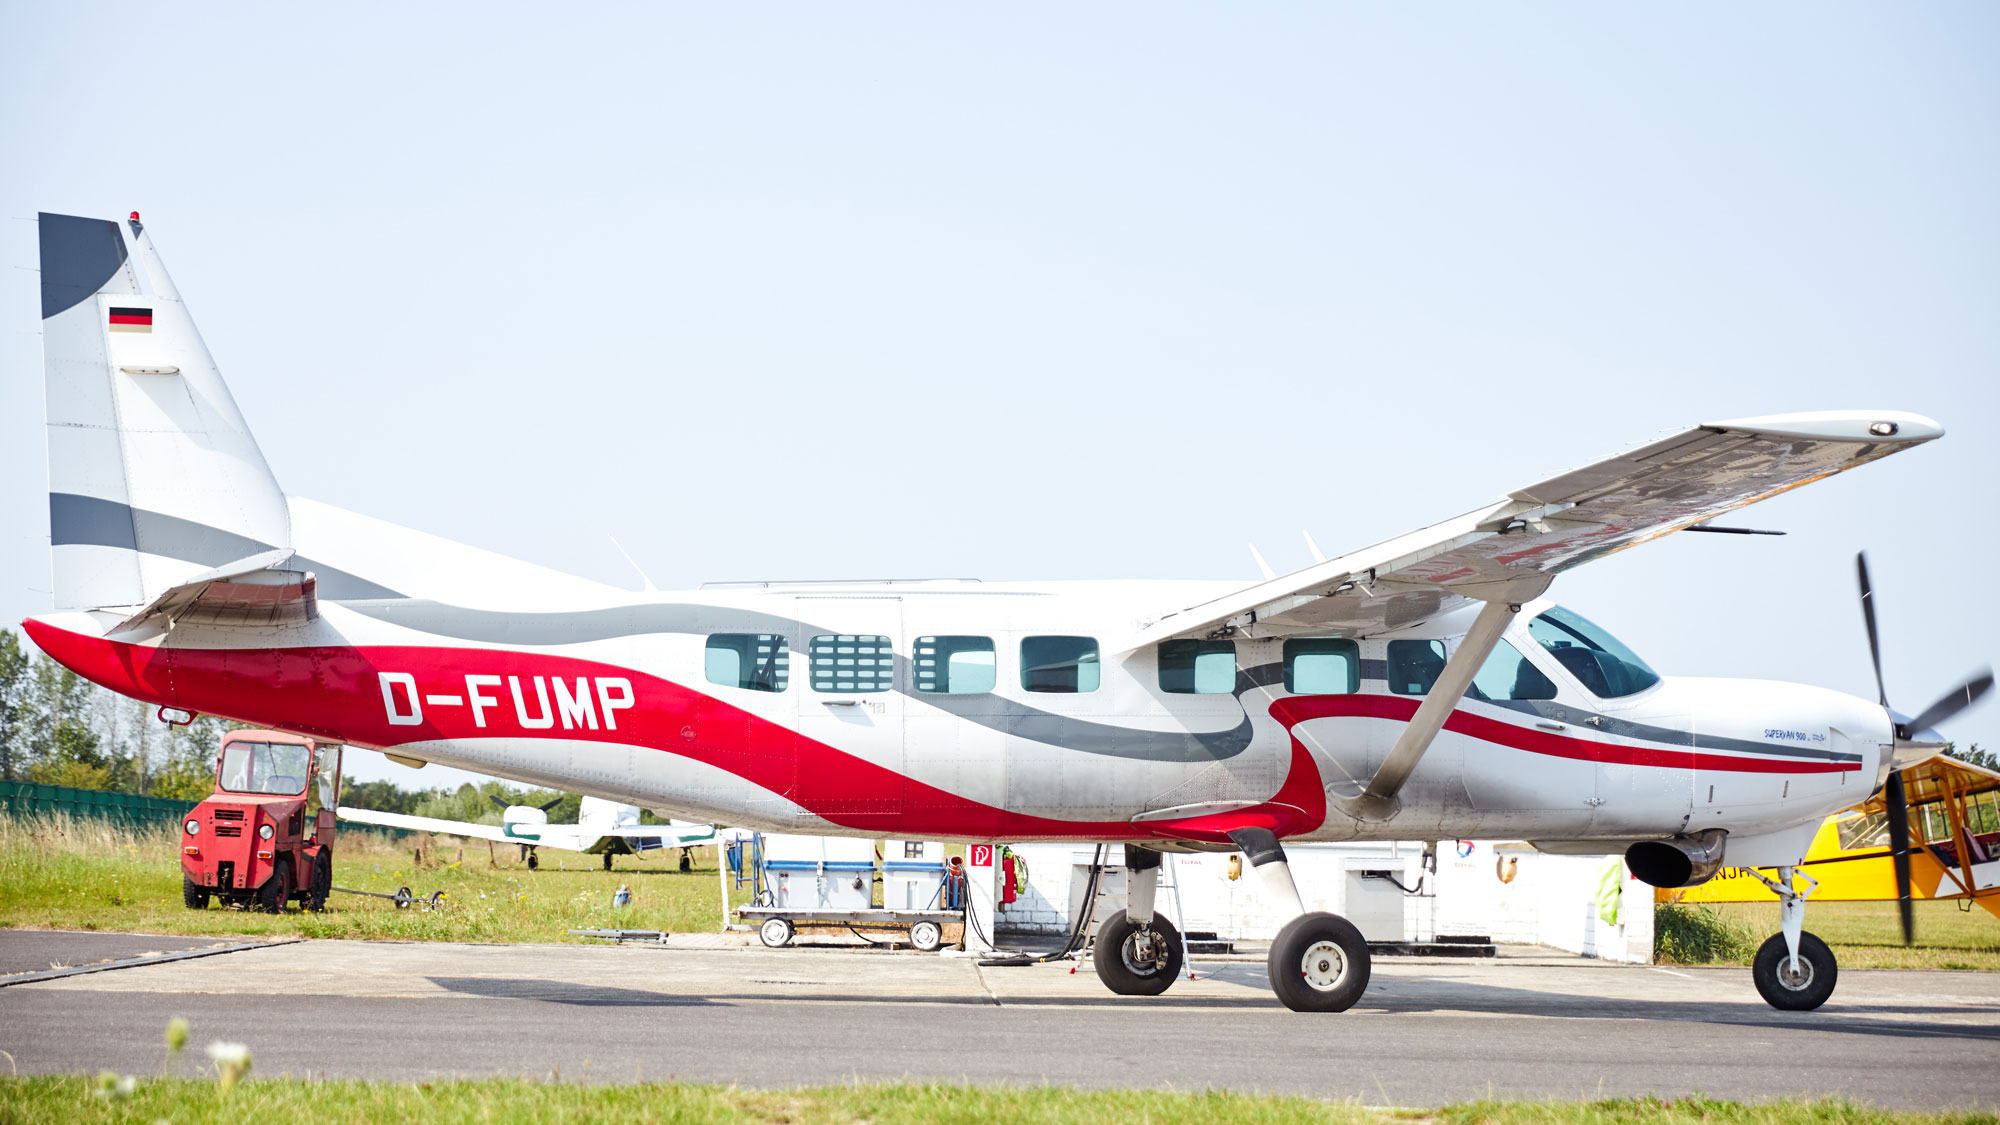 TAKE OFF - Cessna Grand Caravan D-FUMP in der Seitenansicht